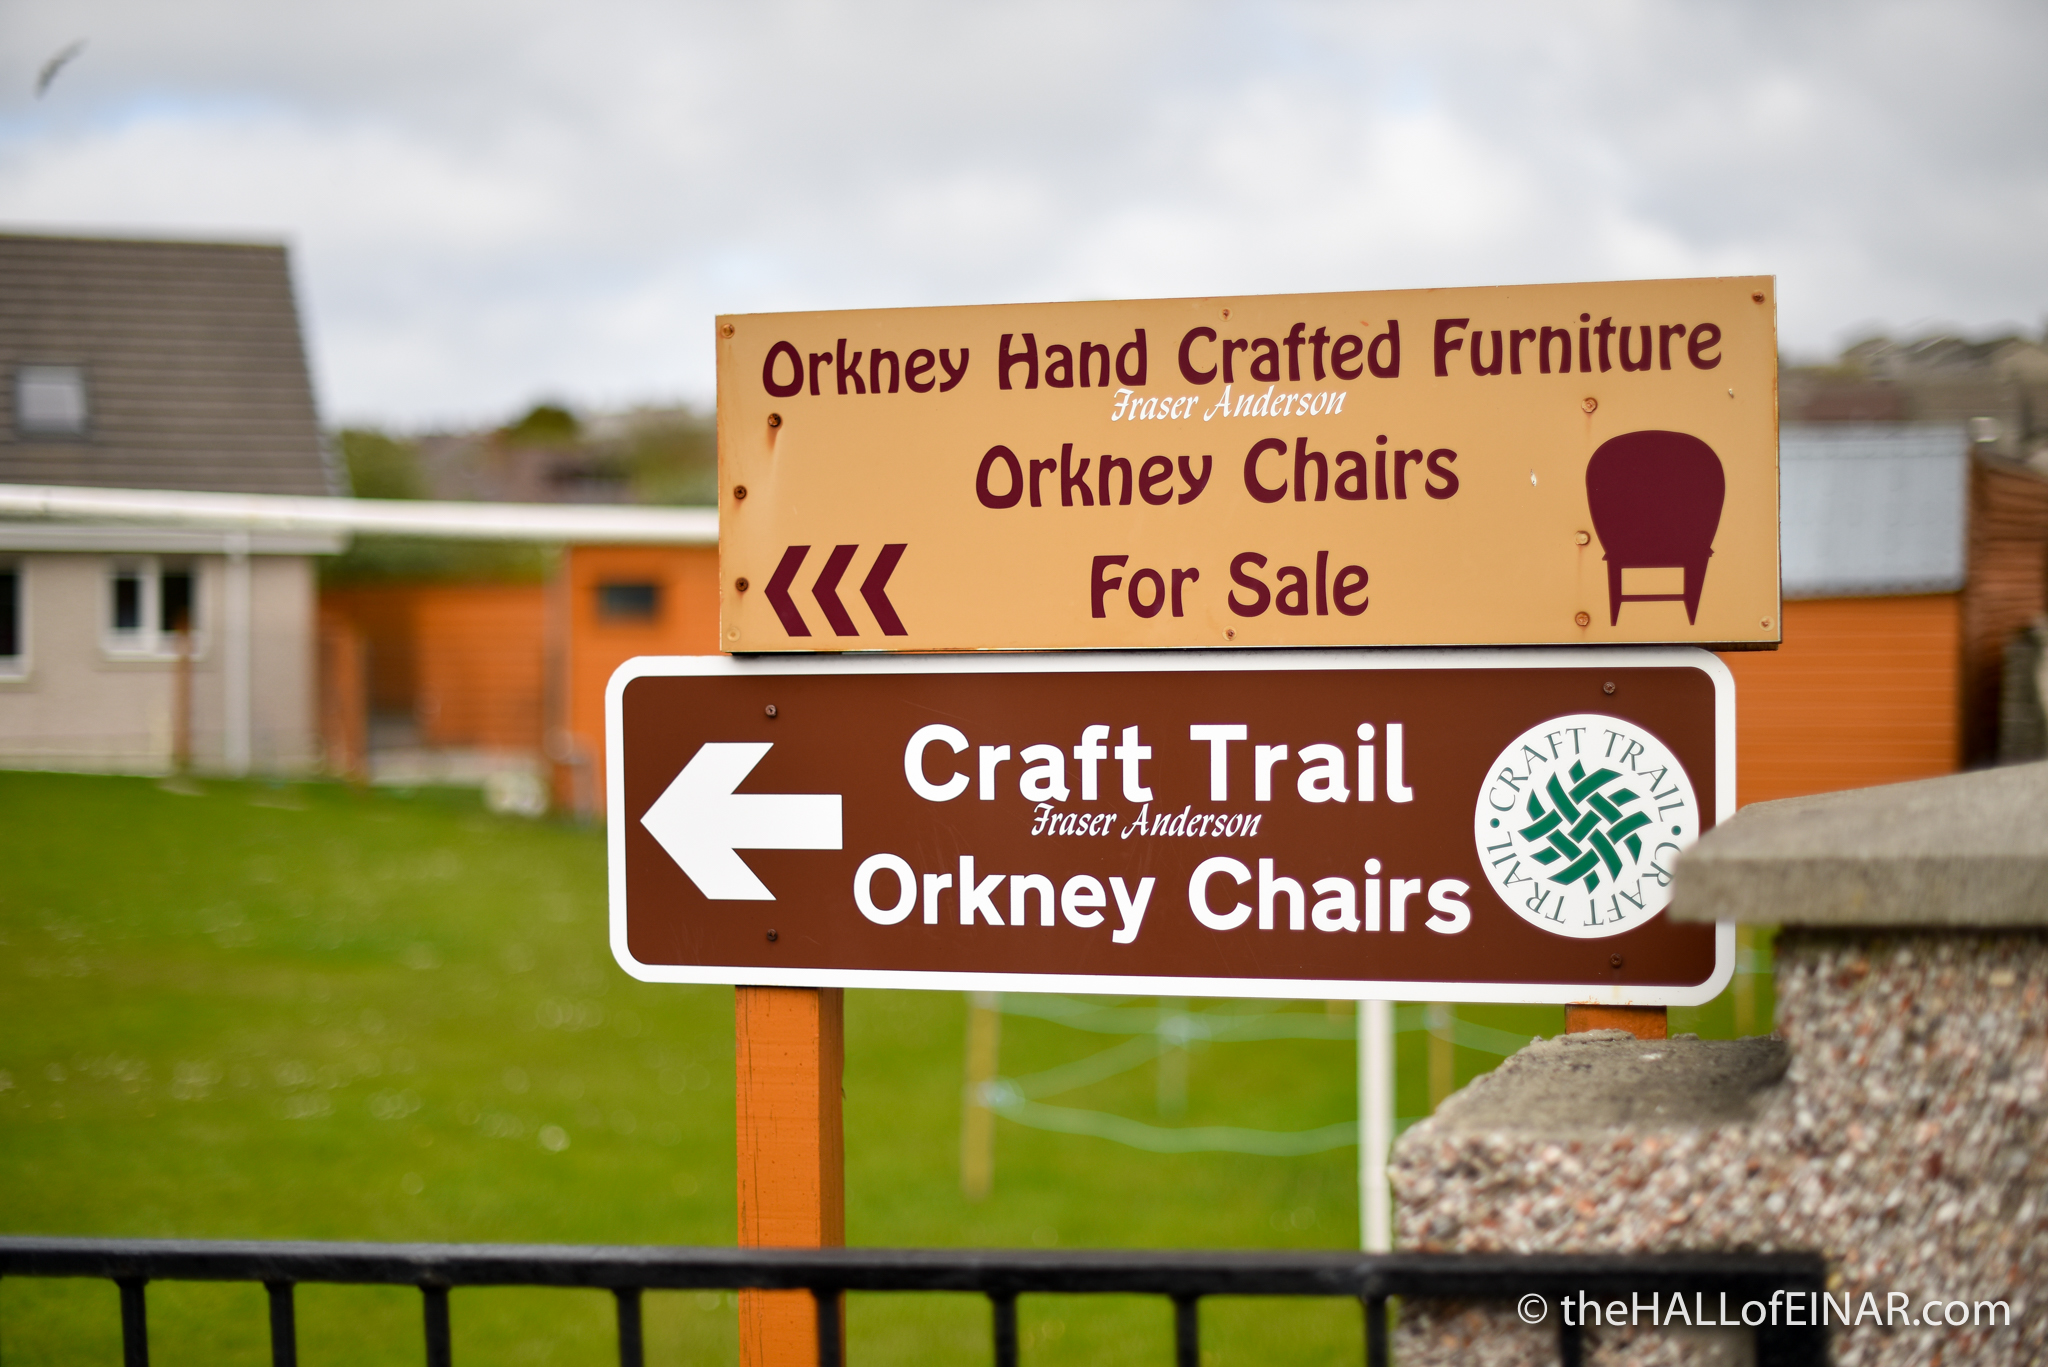 Fraser Anderson - Orkney Handcrafted Furniture - photograph (c) 2016 David Bailey (not the)